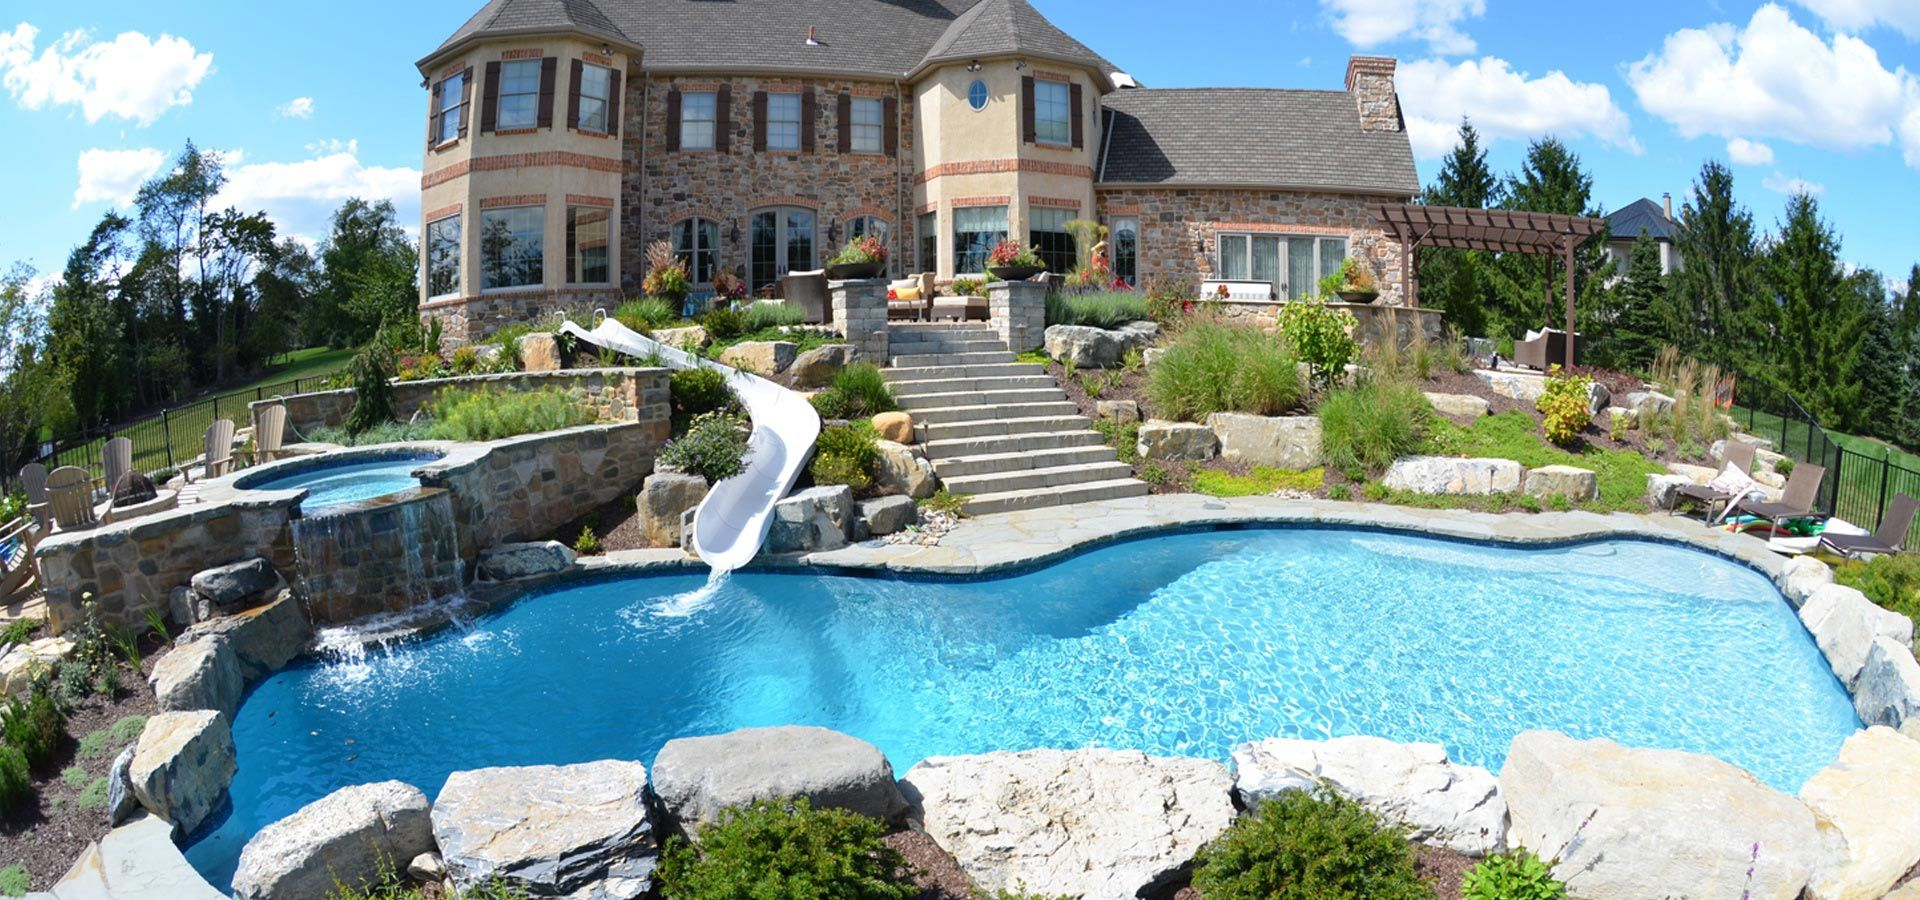 Custom Pool With Waterslide Spa Diamond Brite Finish Custom Pools Pinterest Swimming